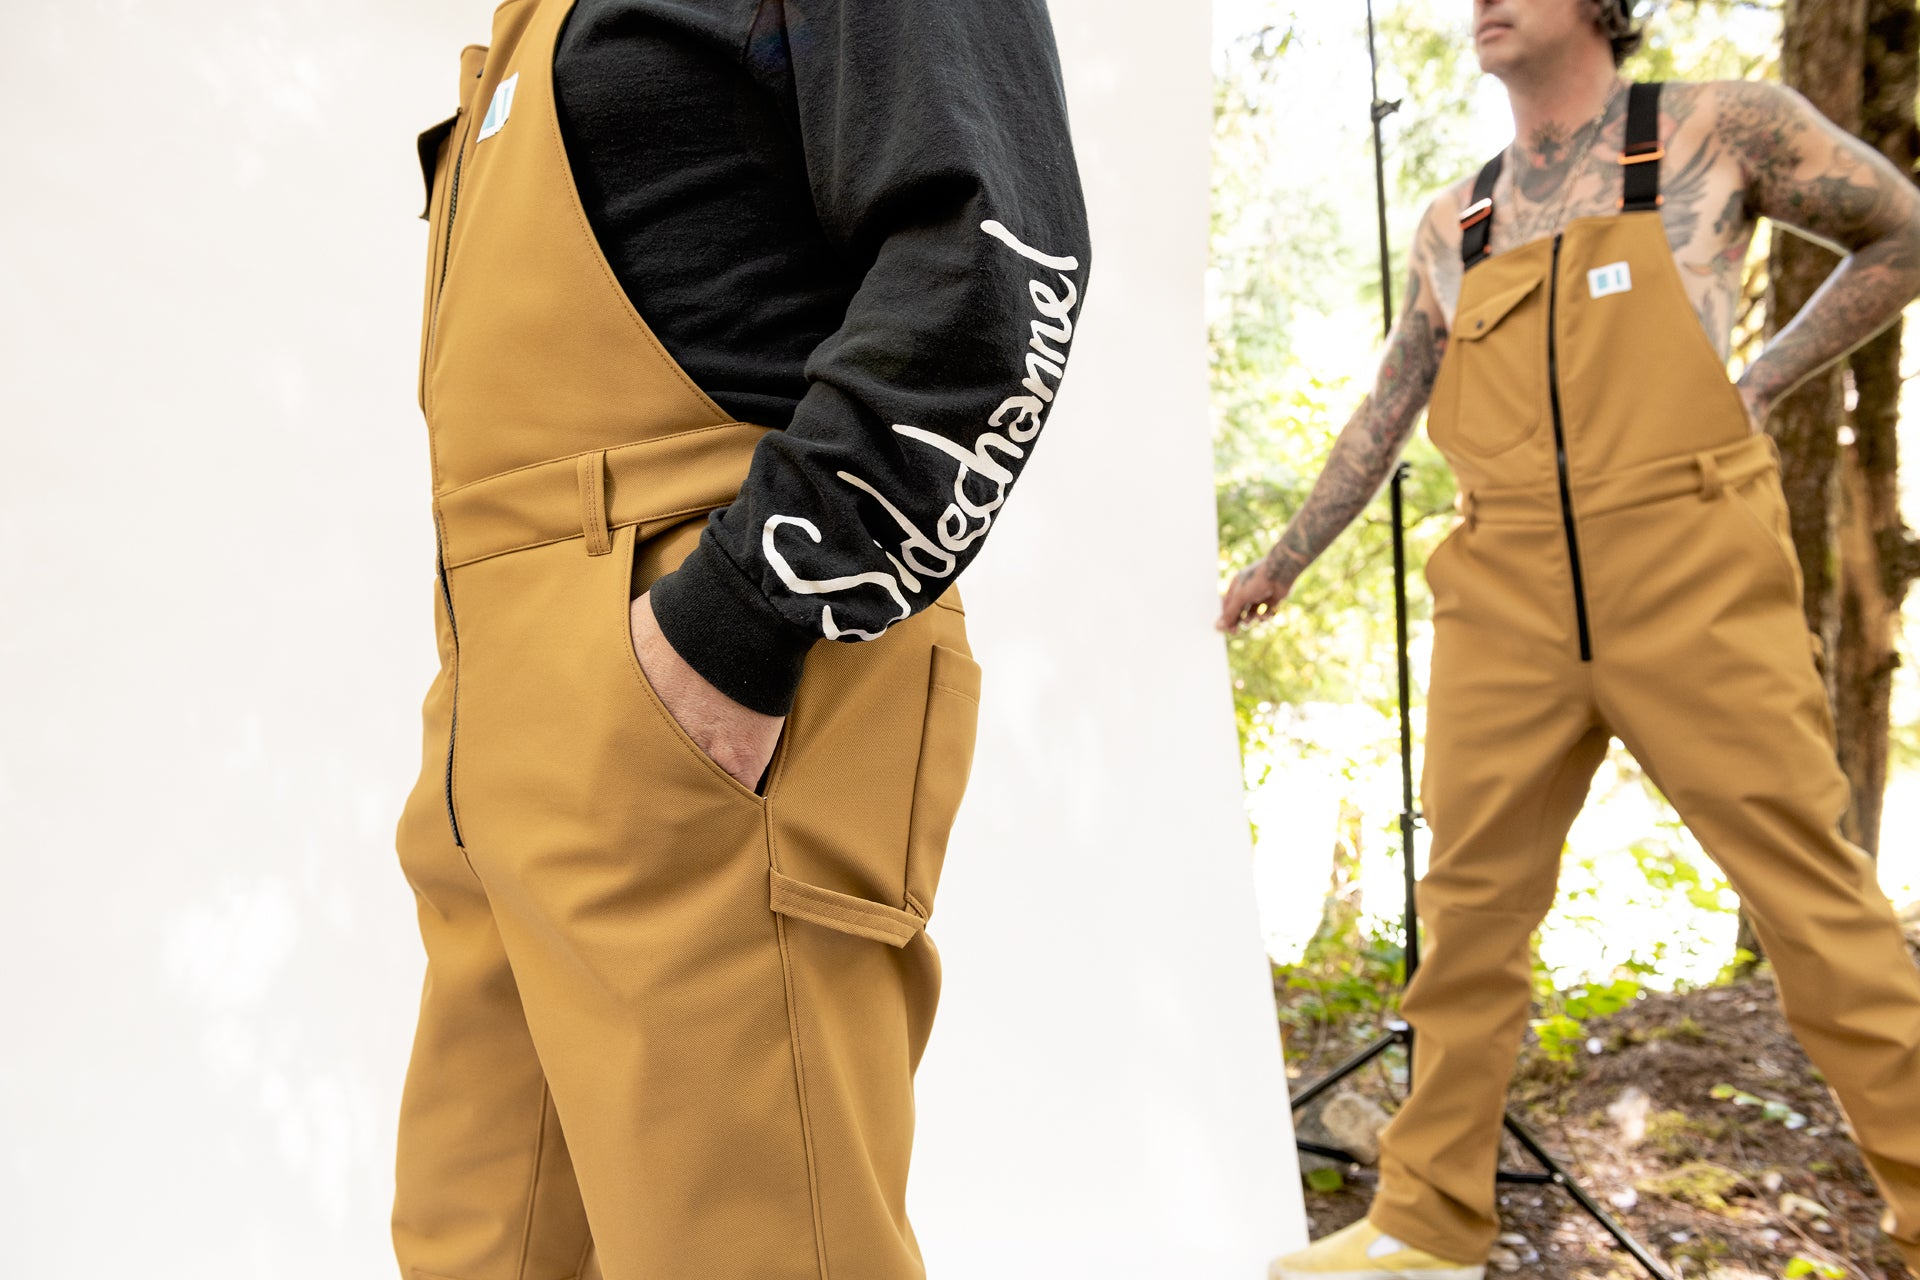 The OV technical mid-layer overall from Sidechannel